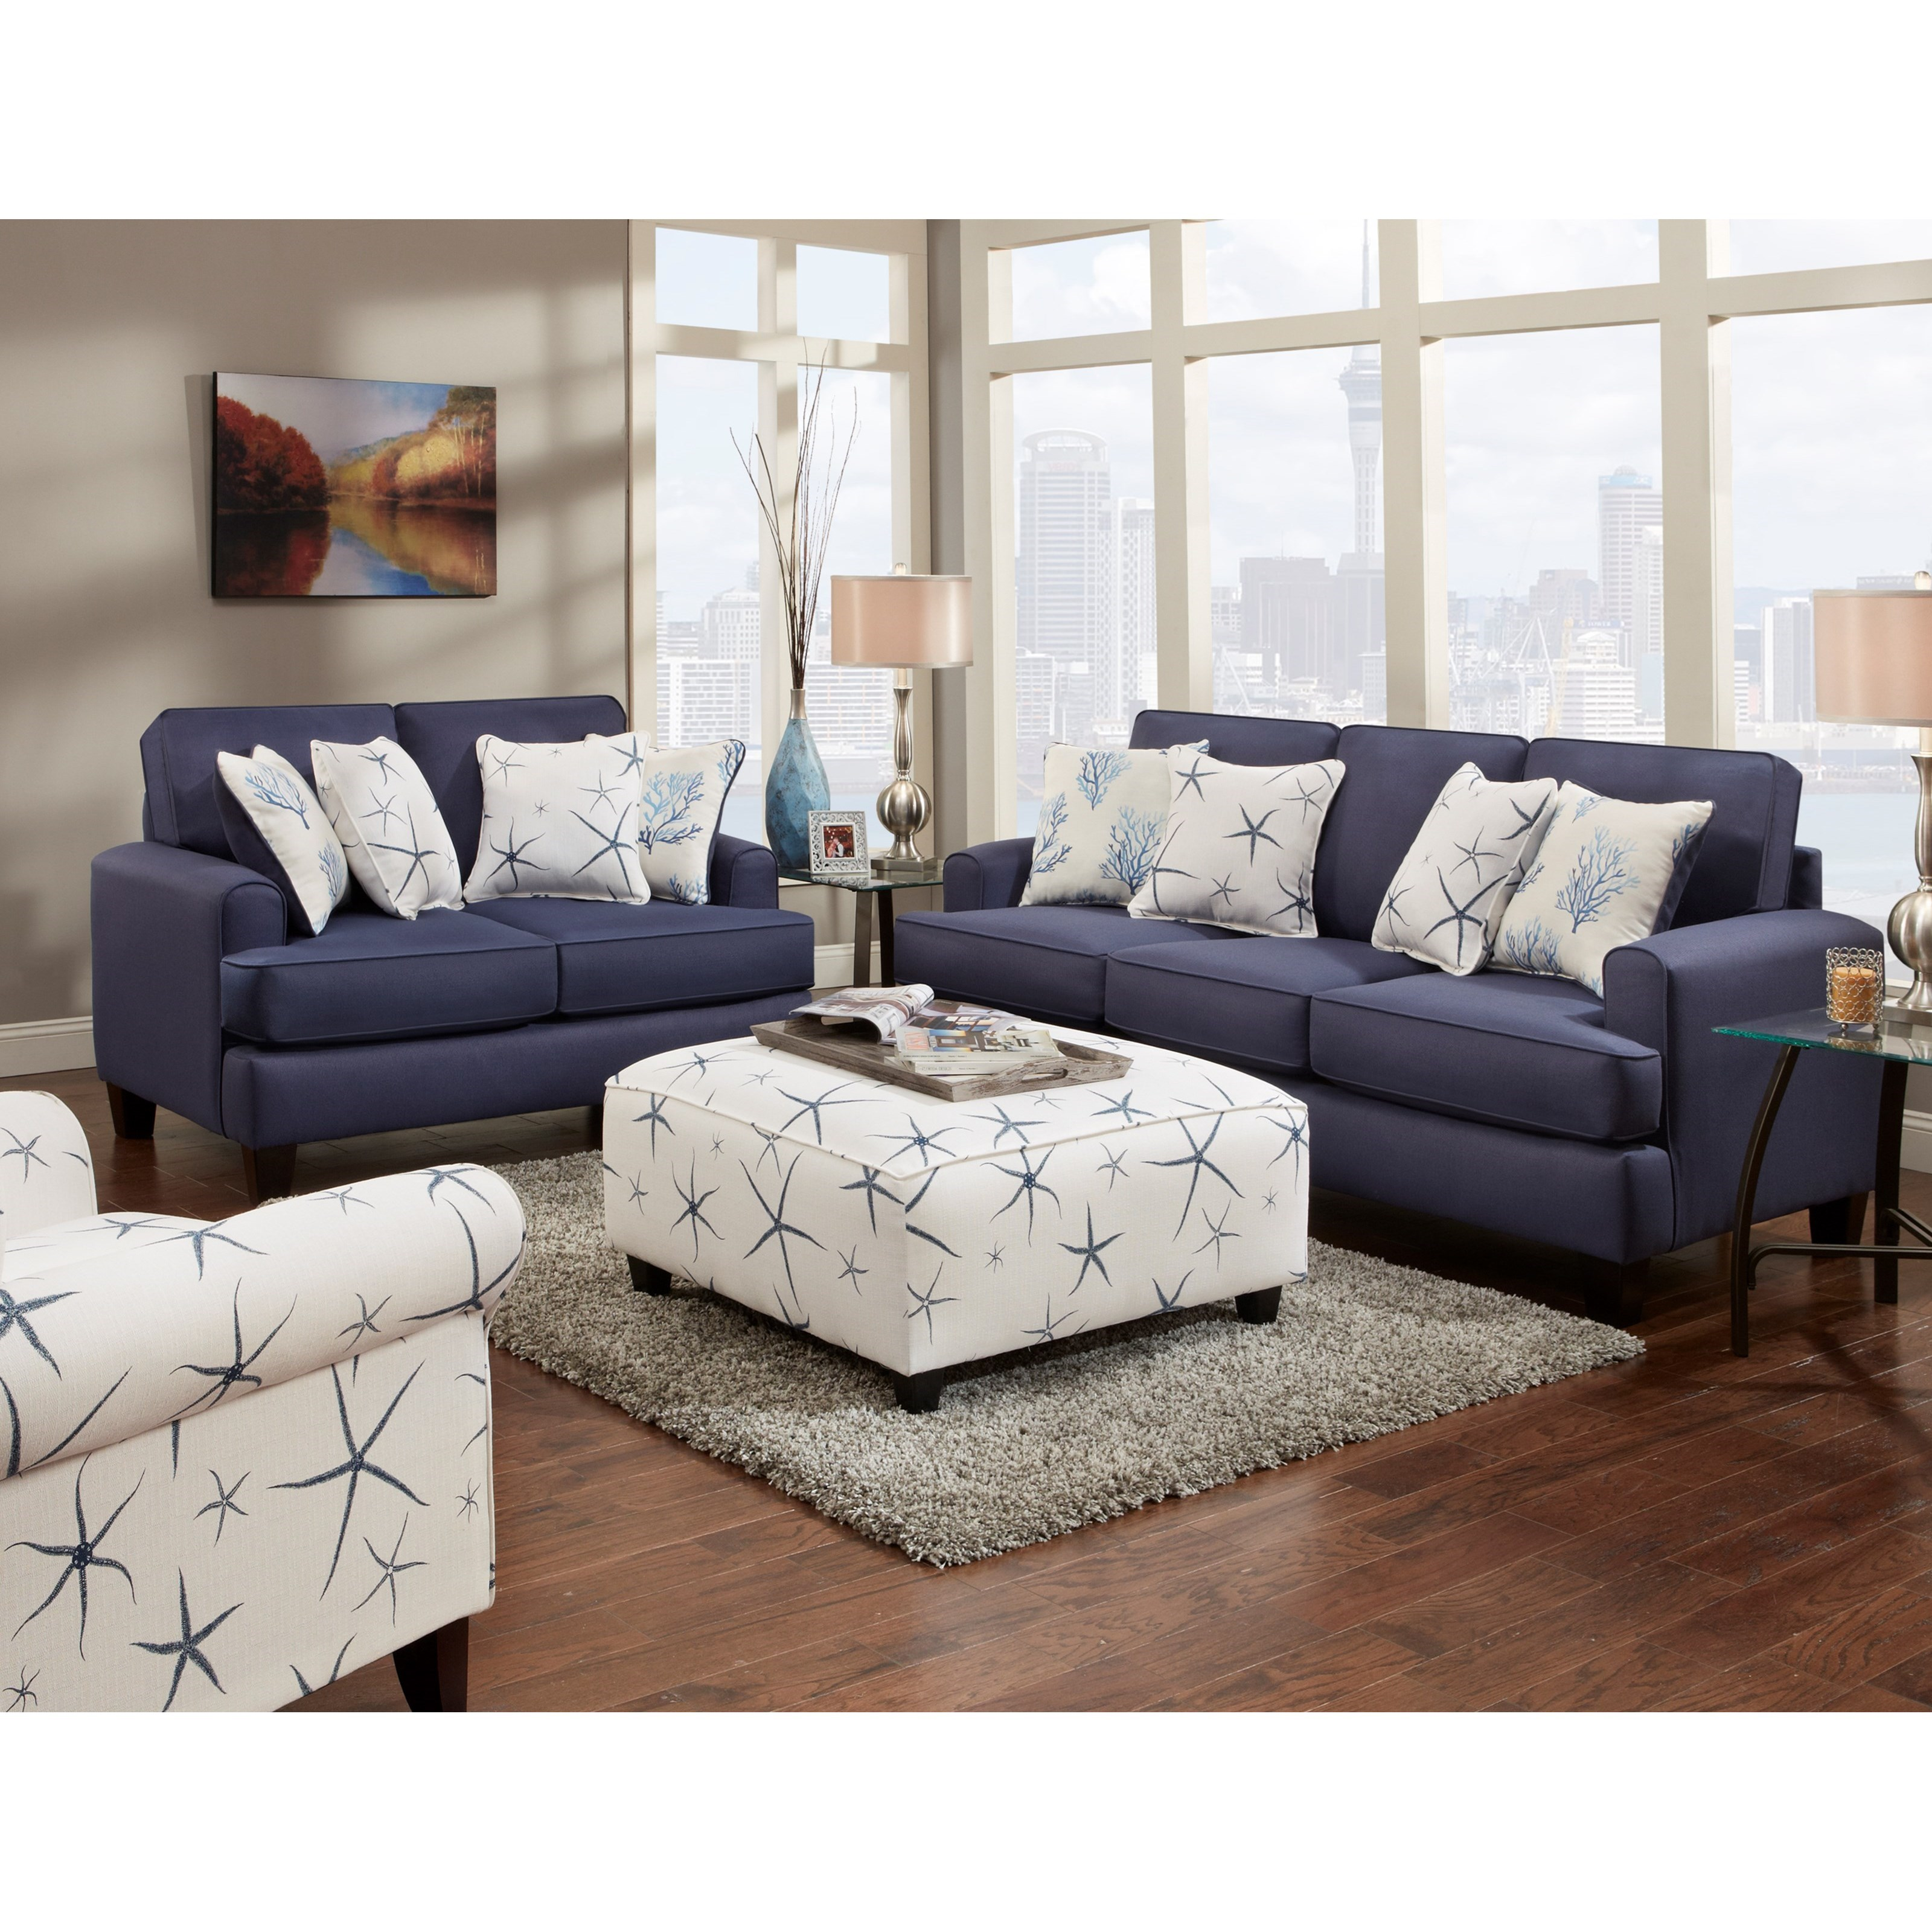 VFM Signature 2600 Stationary Living Room Group - Item Number: 2600 Group Living Room Group 5